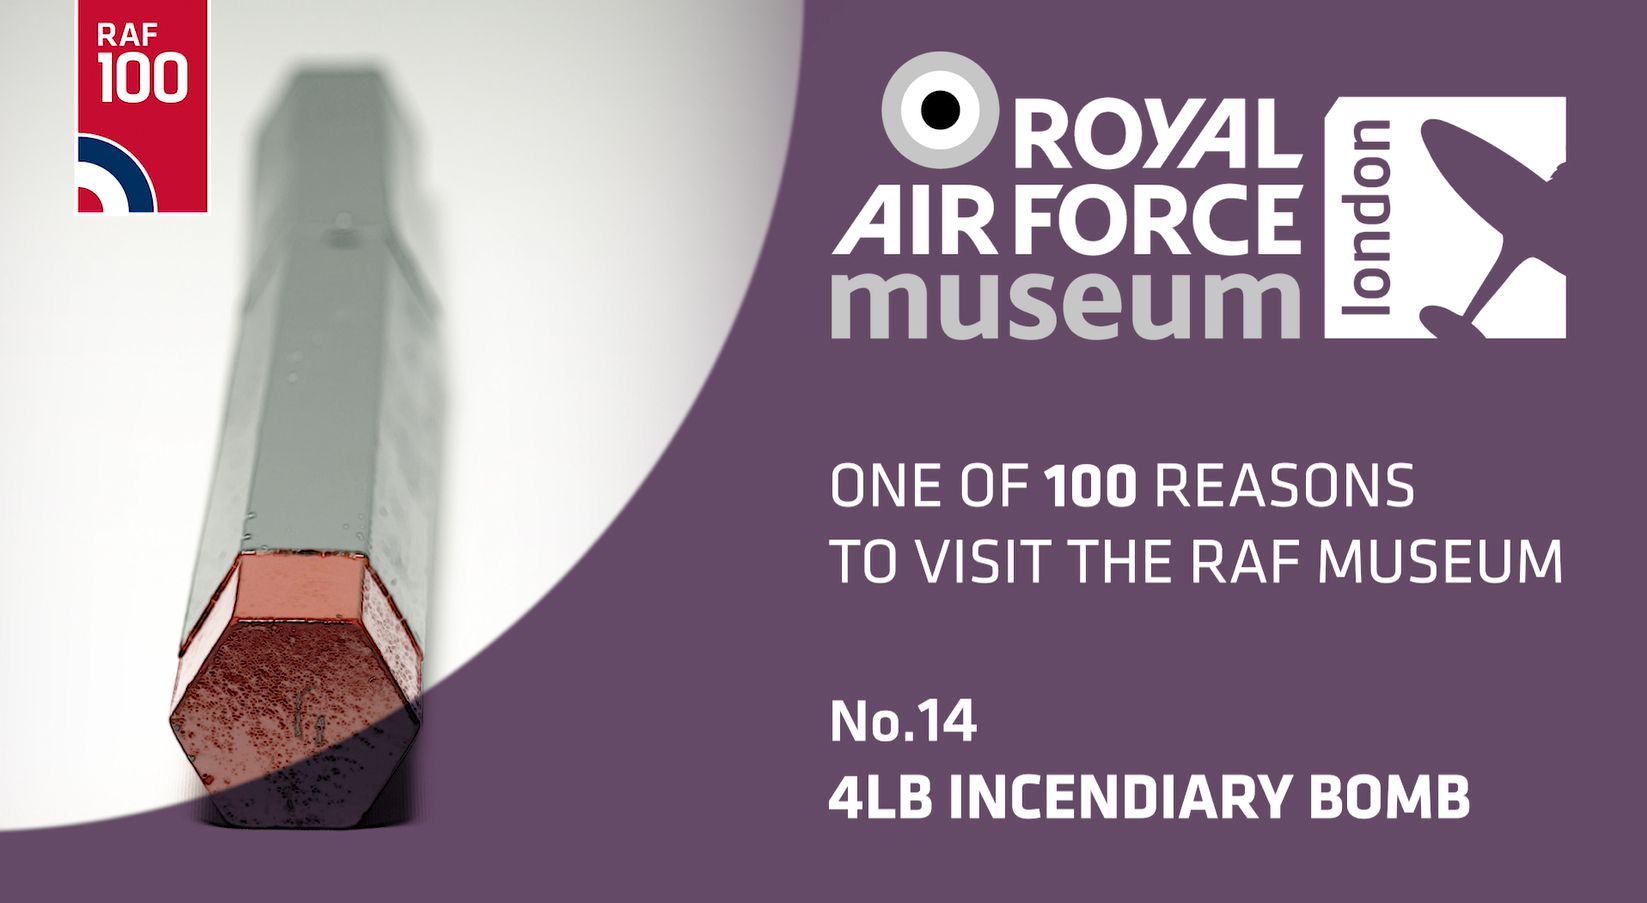 4lbs Incendiary Bomb - one of 100 reasons to visit the RAF Museum